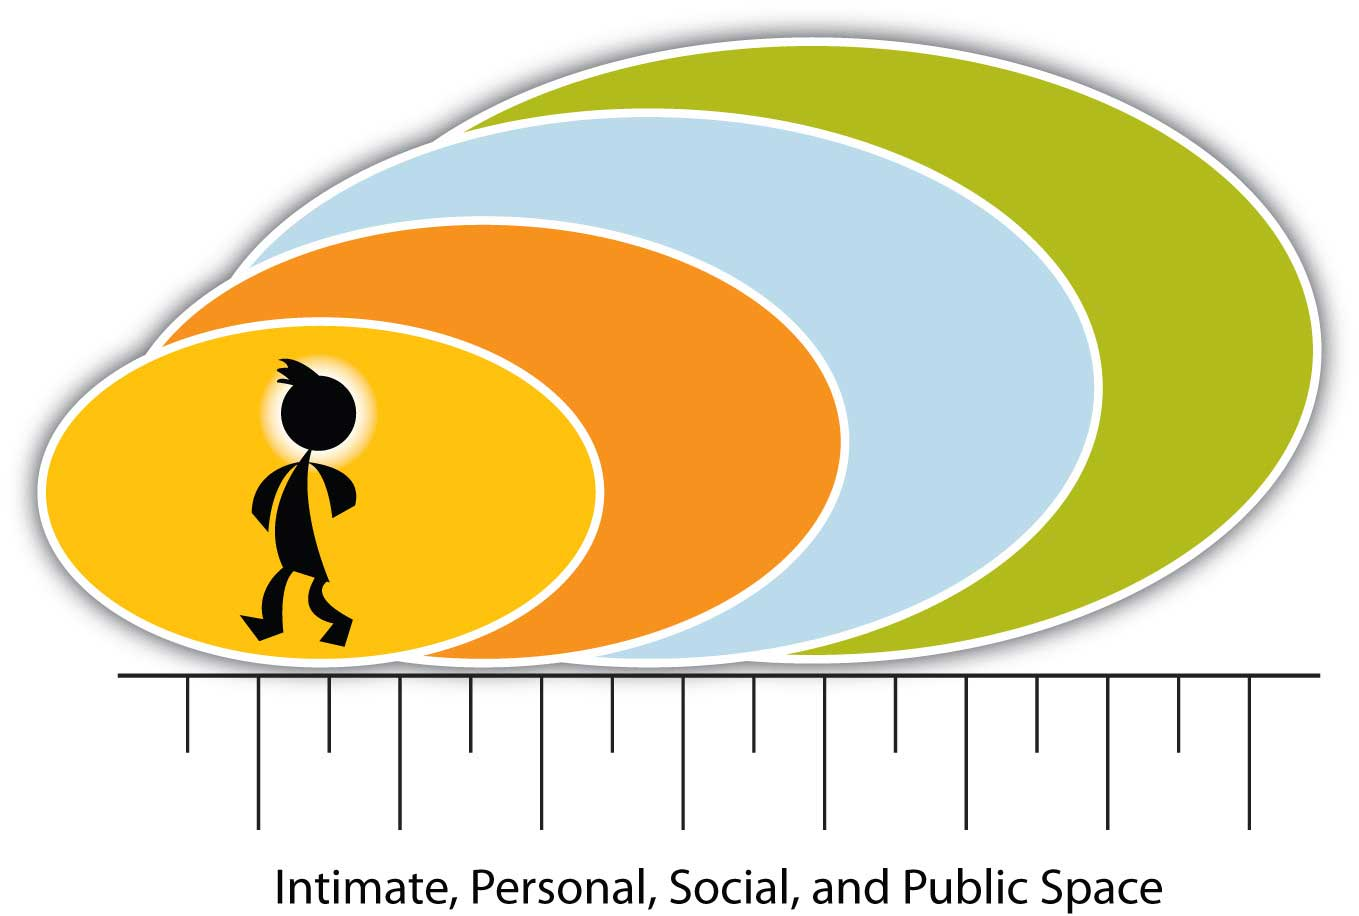 Space: Four Main Categories of Distance (Intimate, Personal, Social, and Public Space)